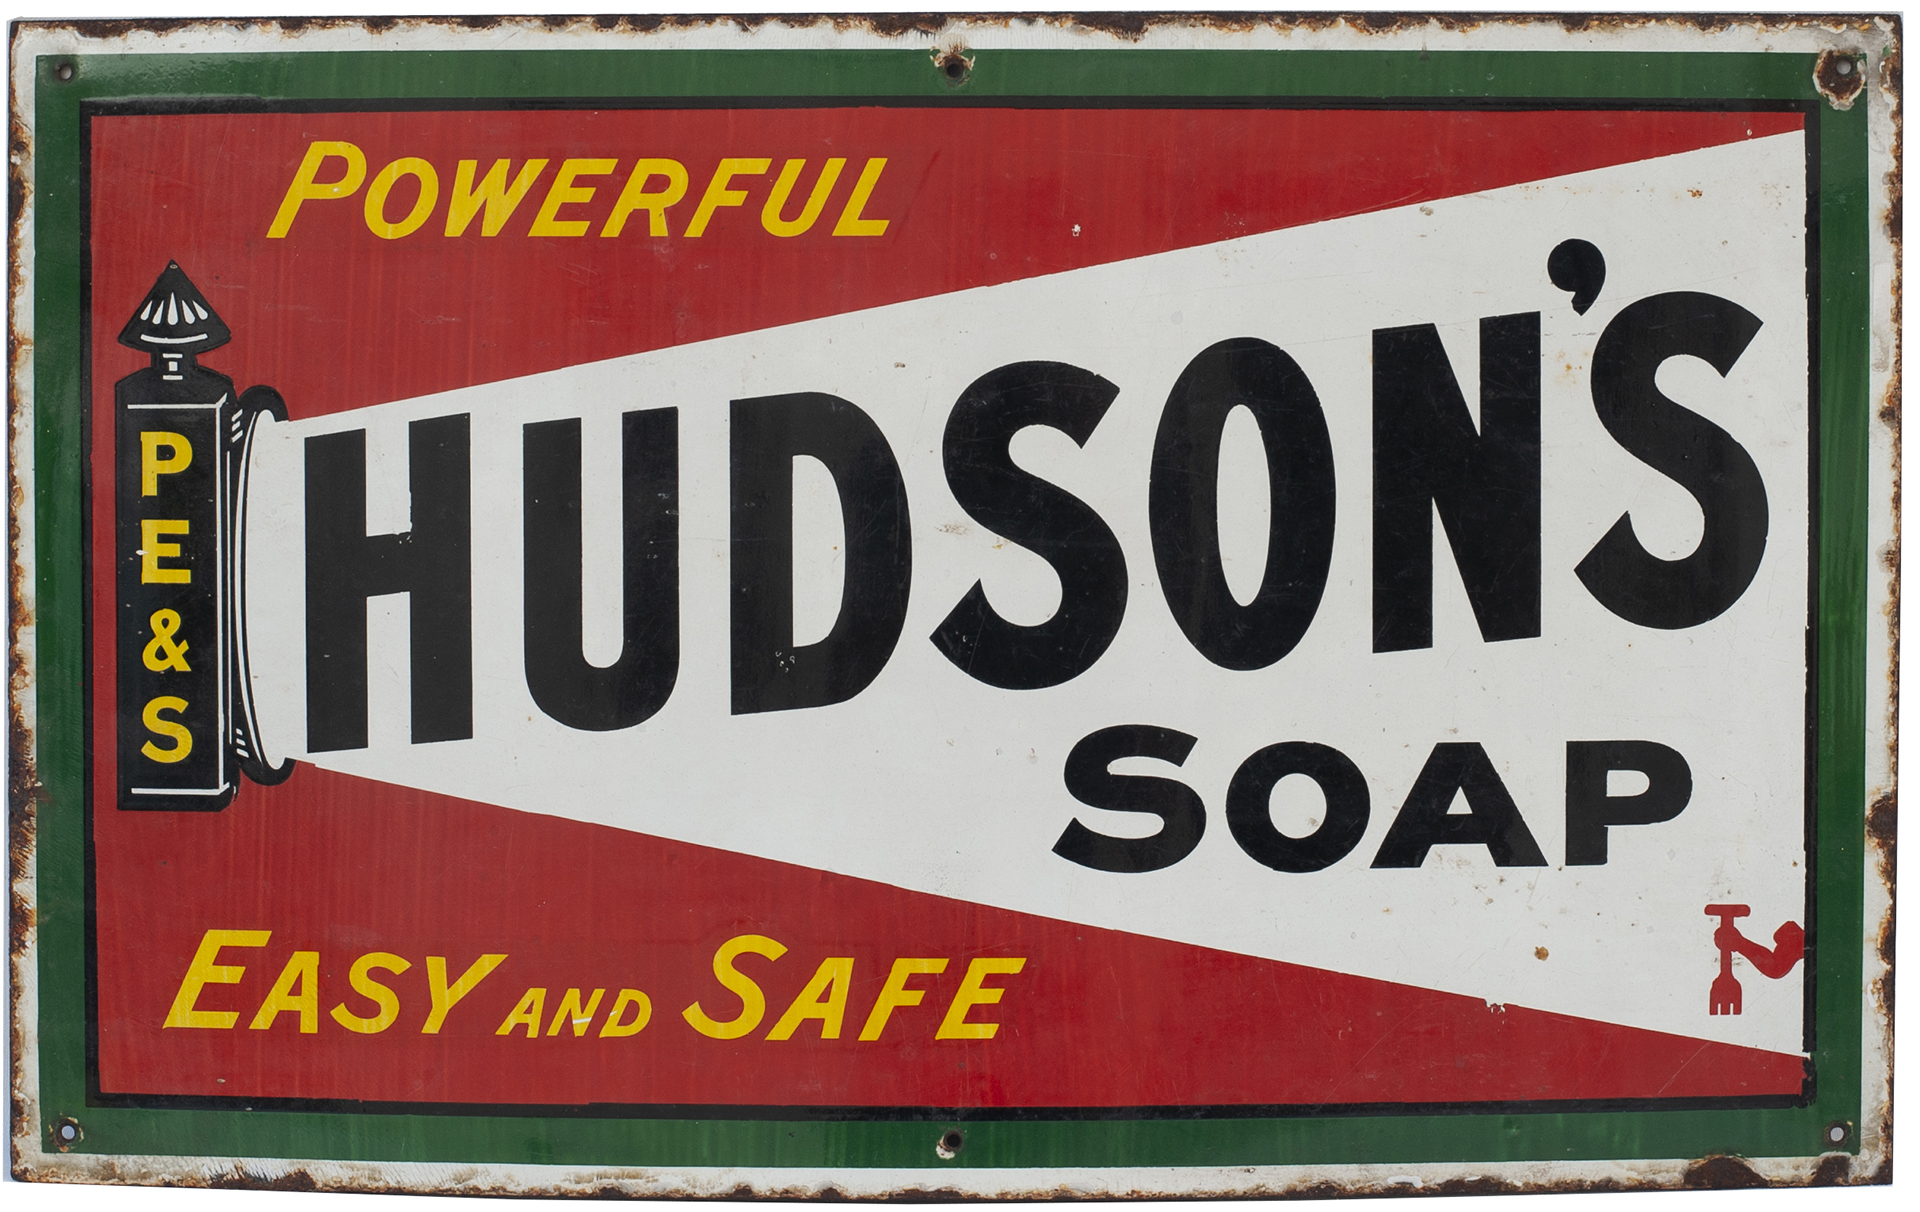 Advertising enamel sign HUDSON'S SOAP POWERFUL EASY AND SAFE. In very good condition measures 26in x